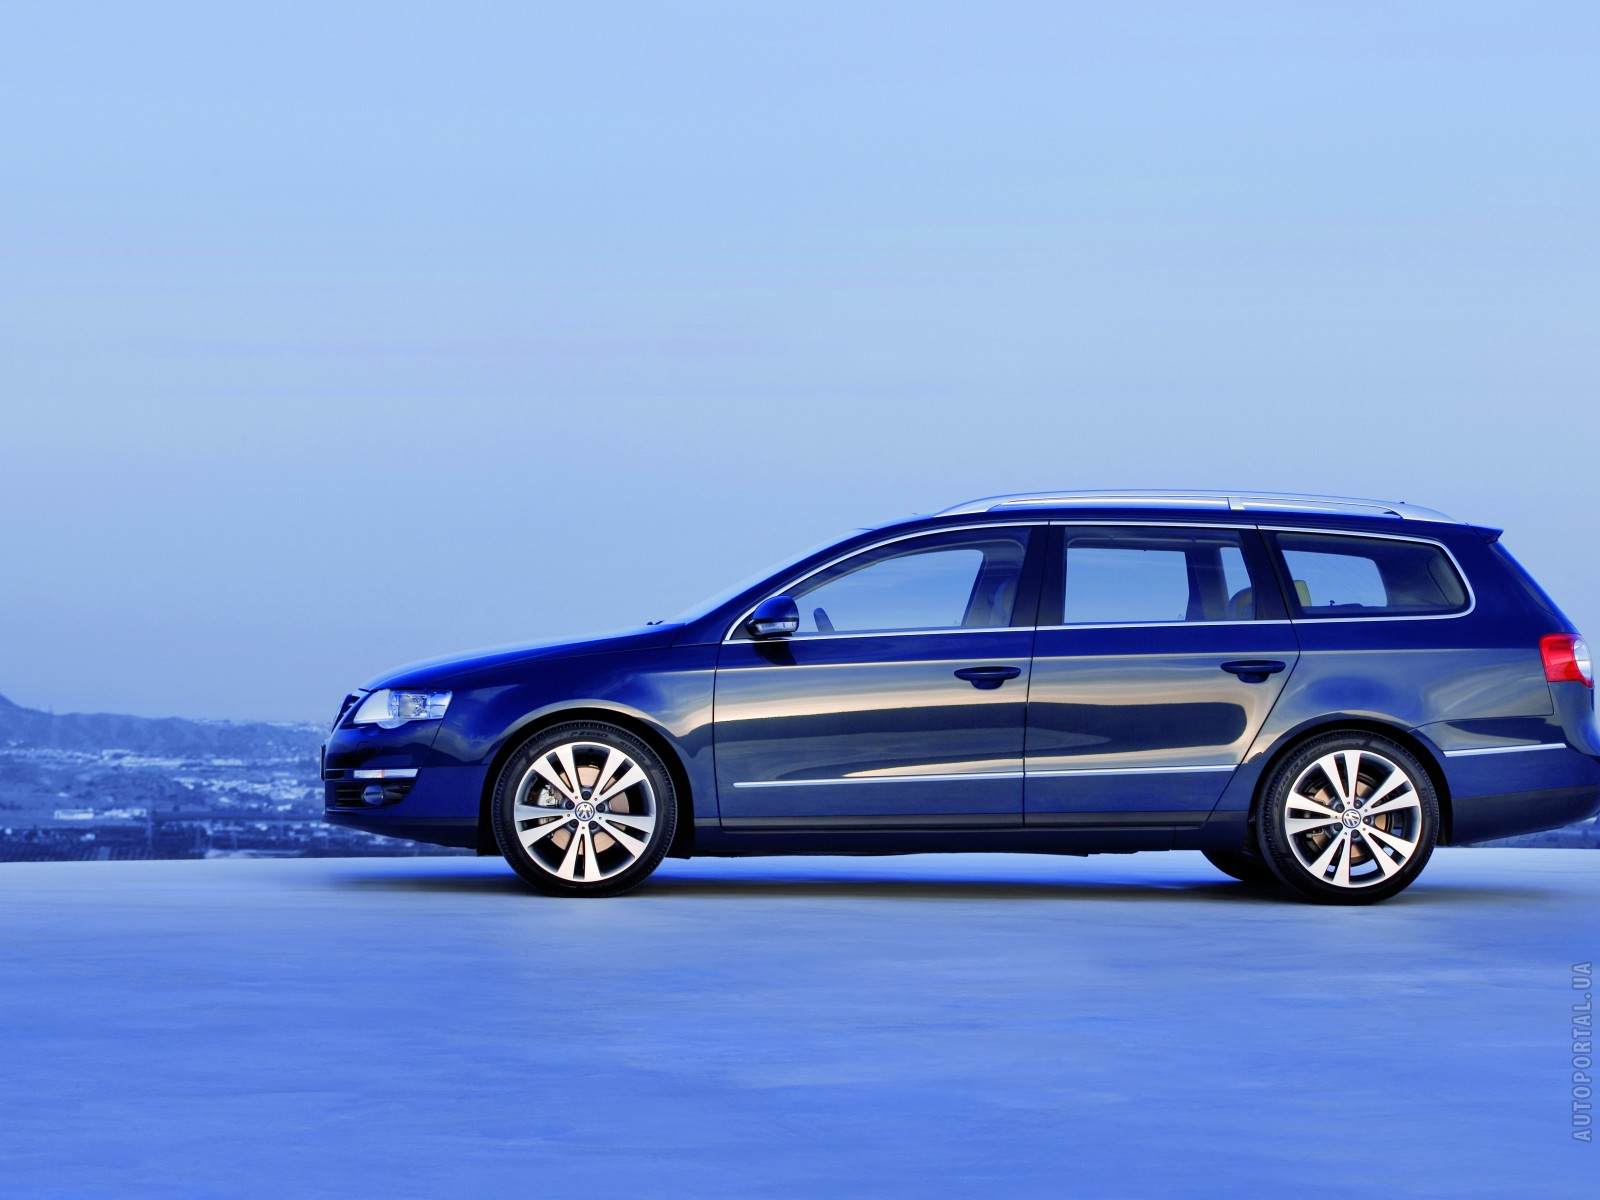 Passat Wagon Listings.  7,775 Ve…